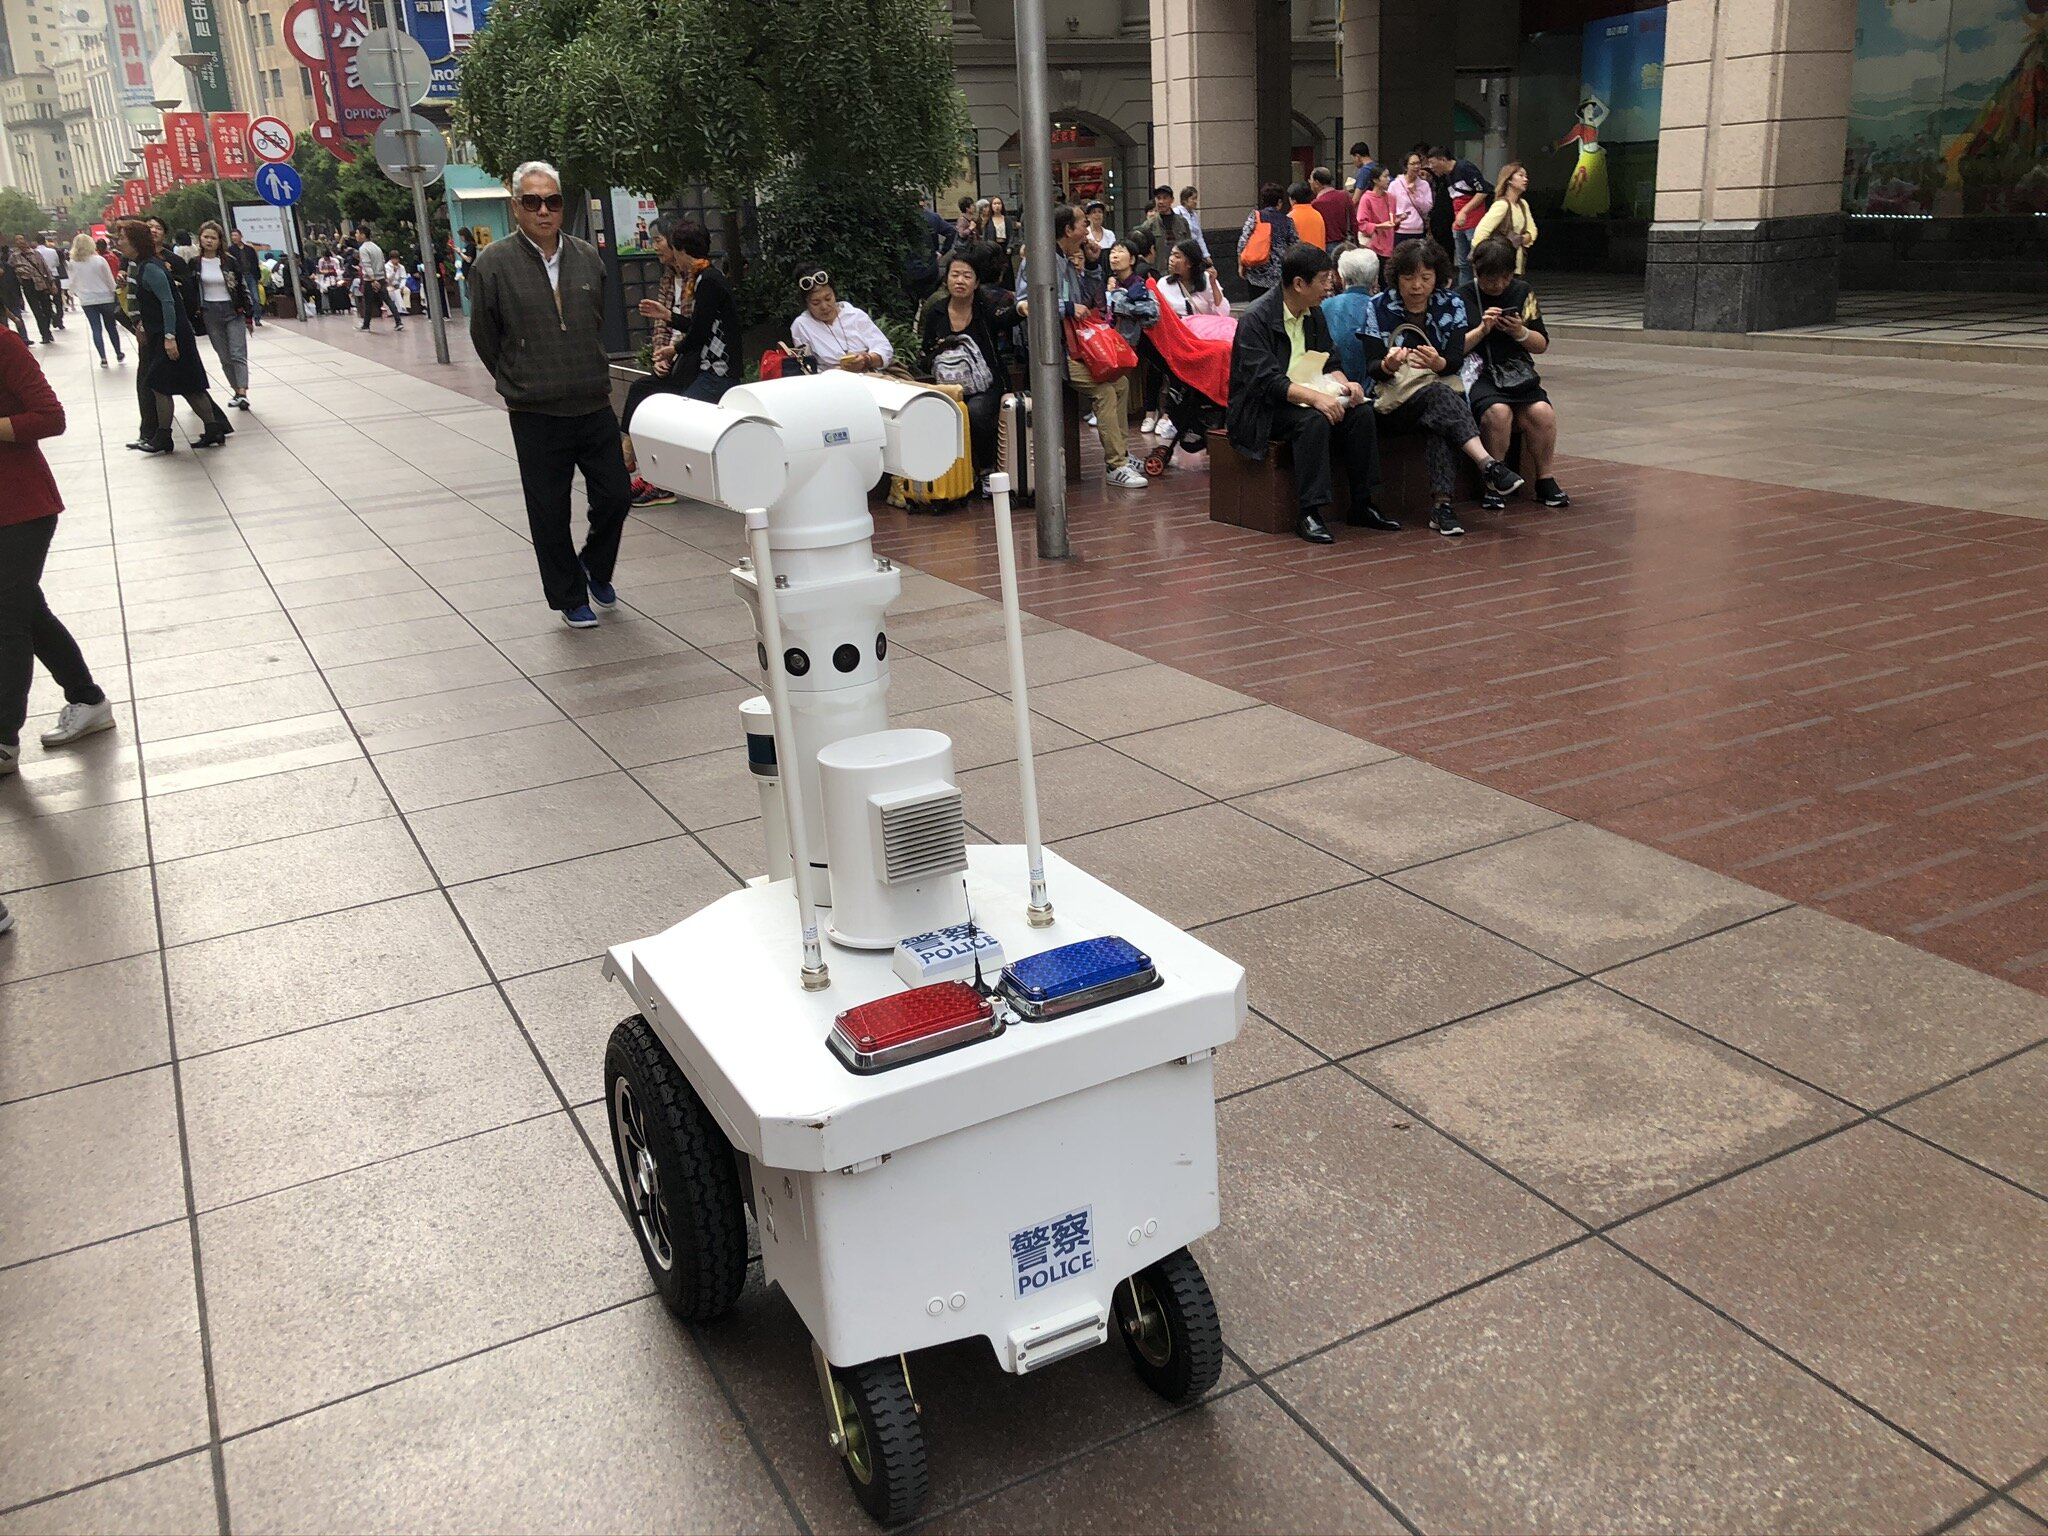 A robotic police patrols the streets